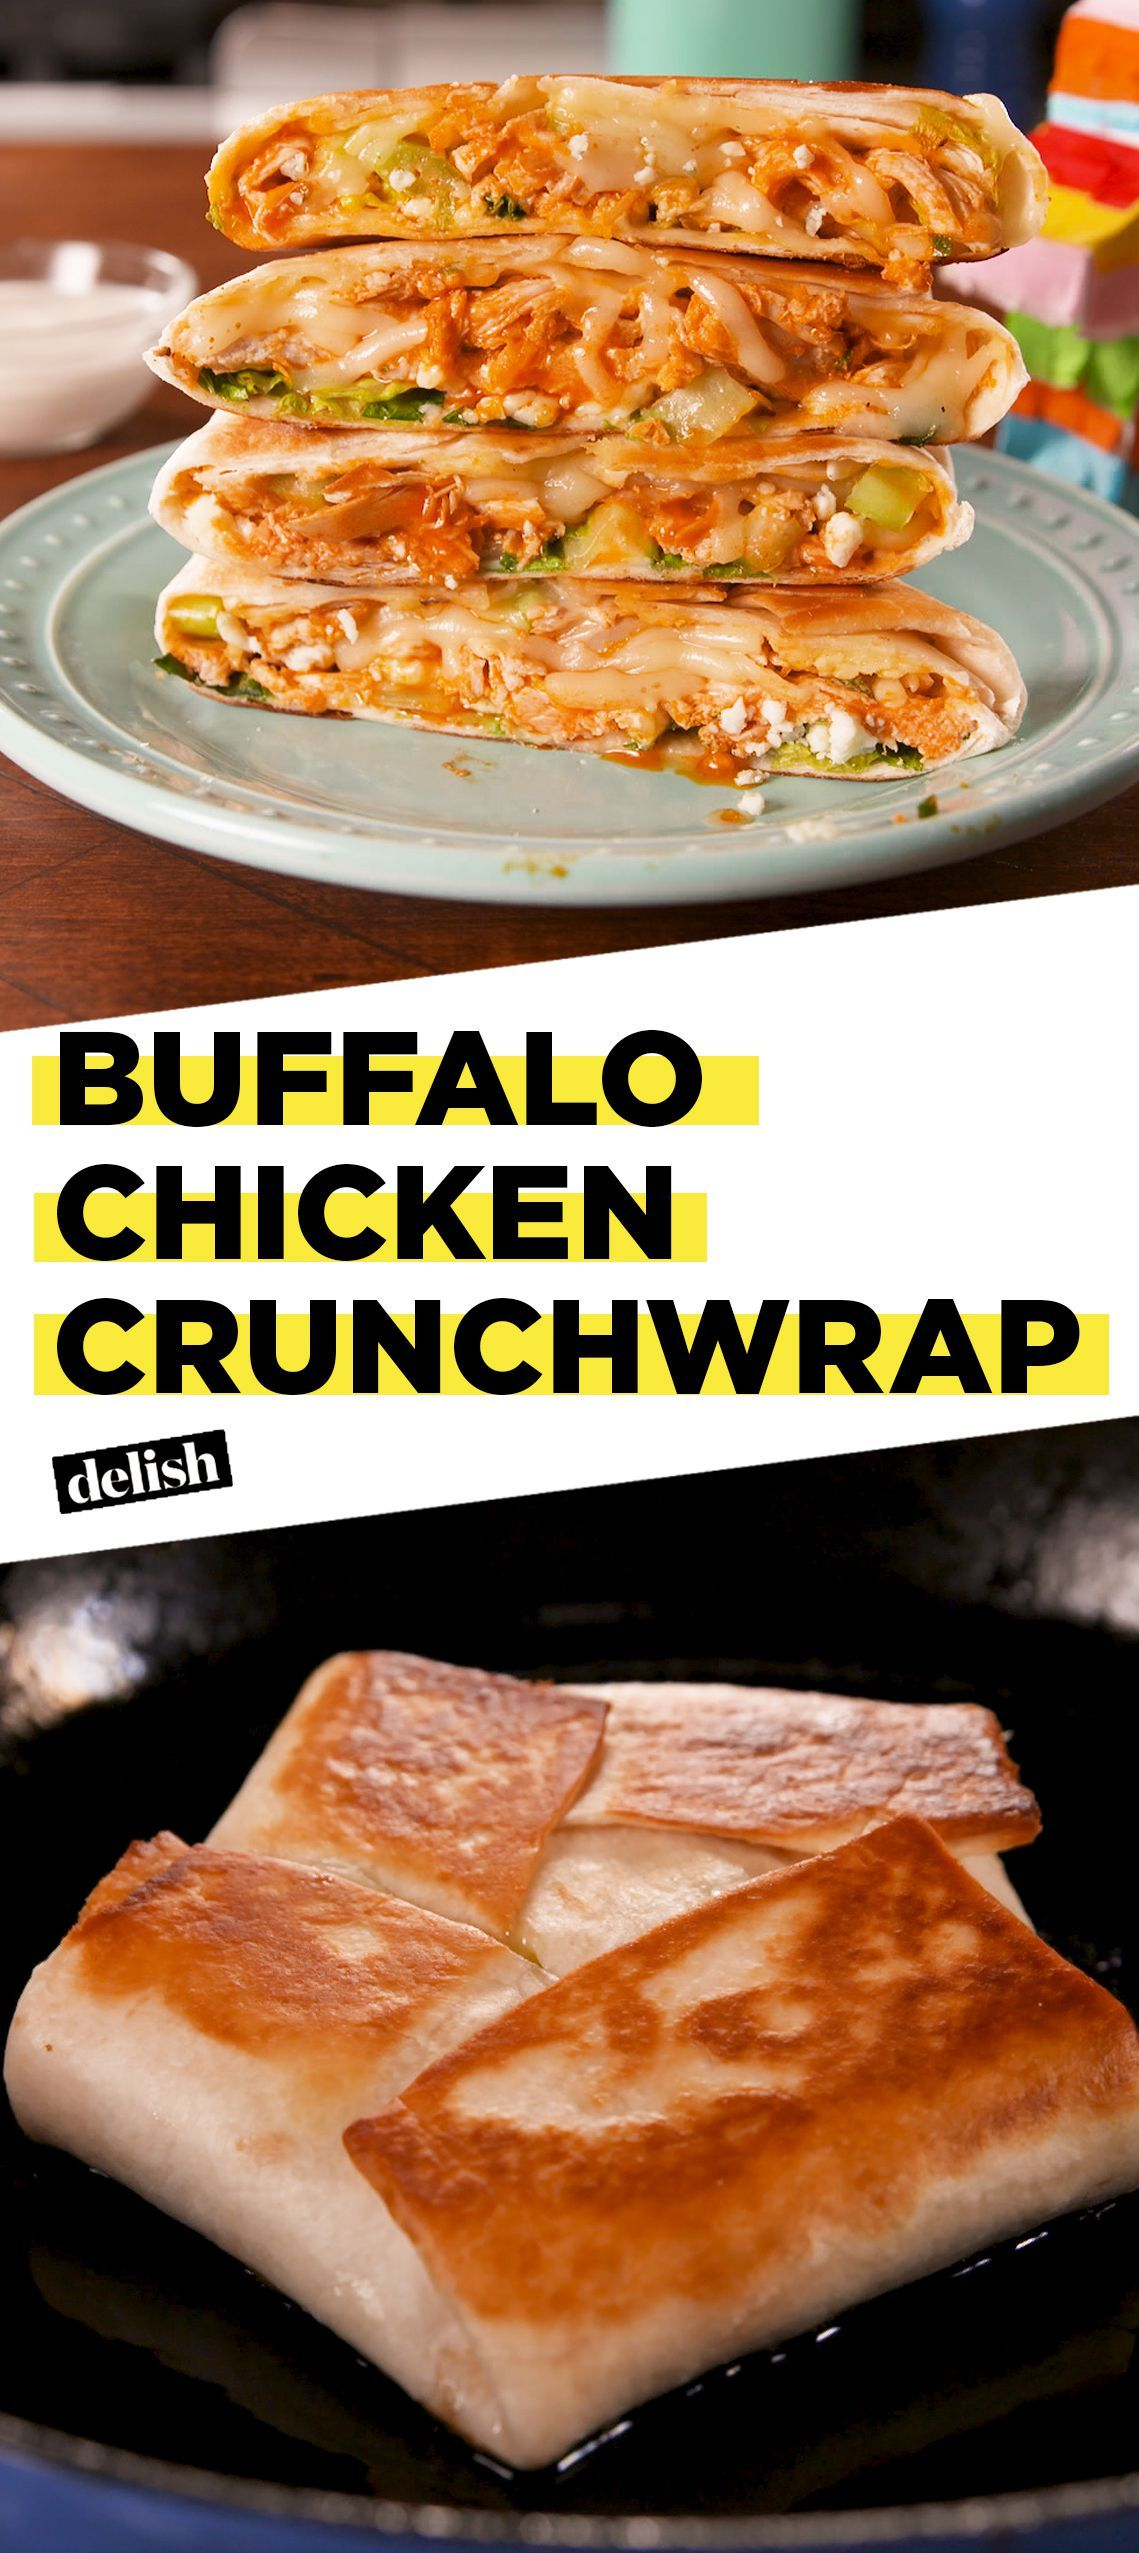 Taco Bell Fans, You Need To Try This Buffalo Chicken Crunchwrap.